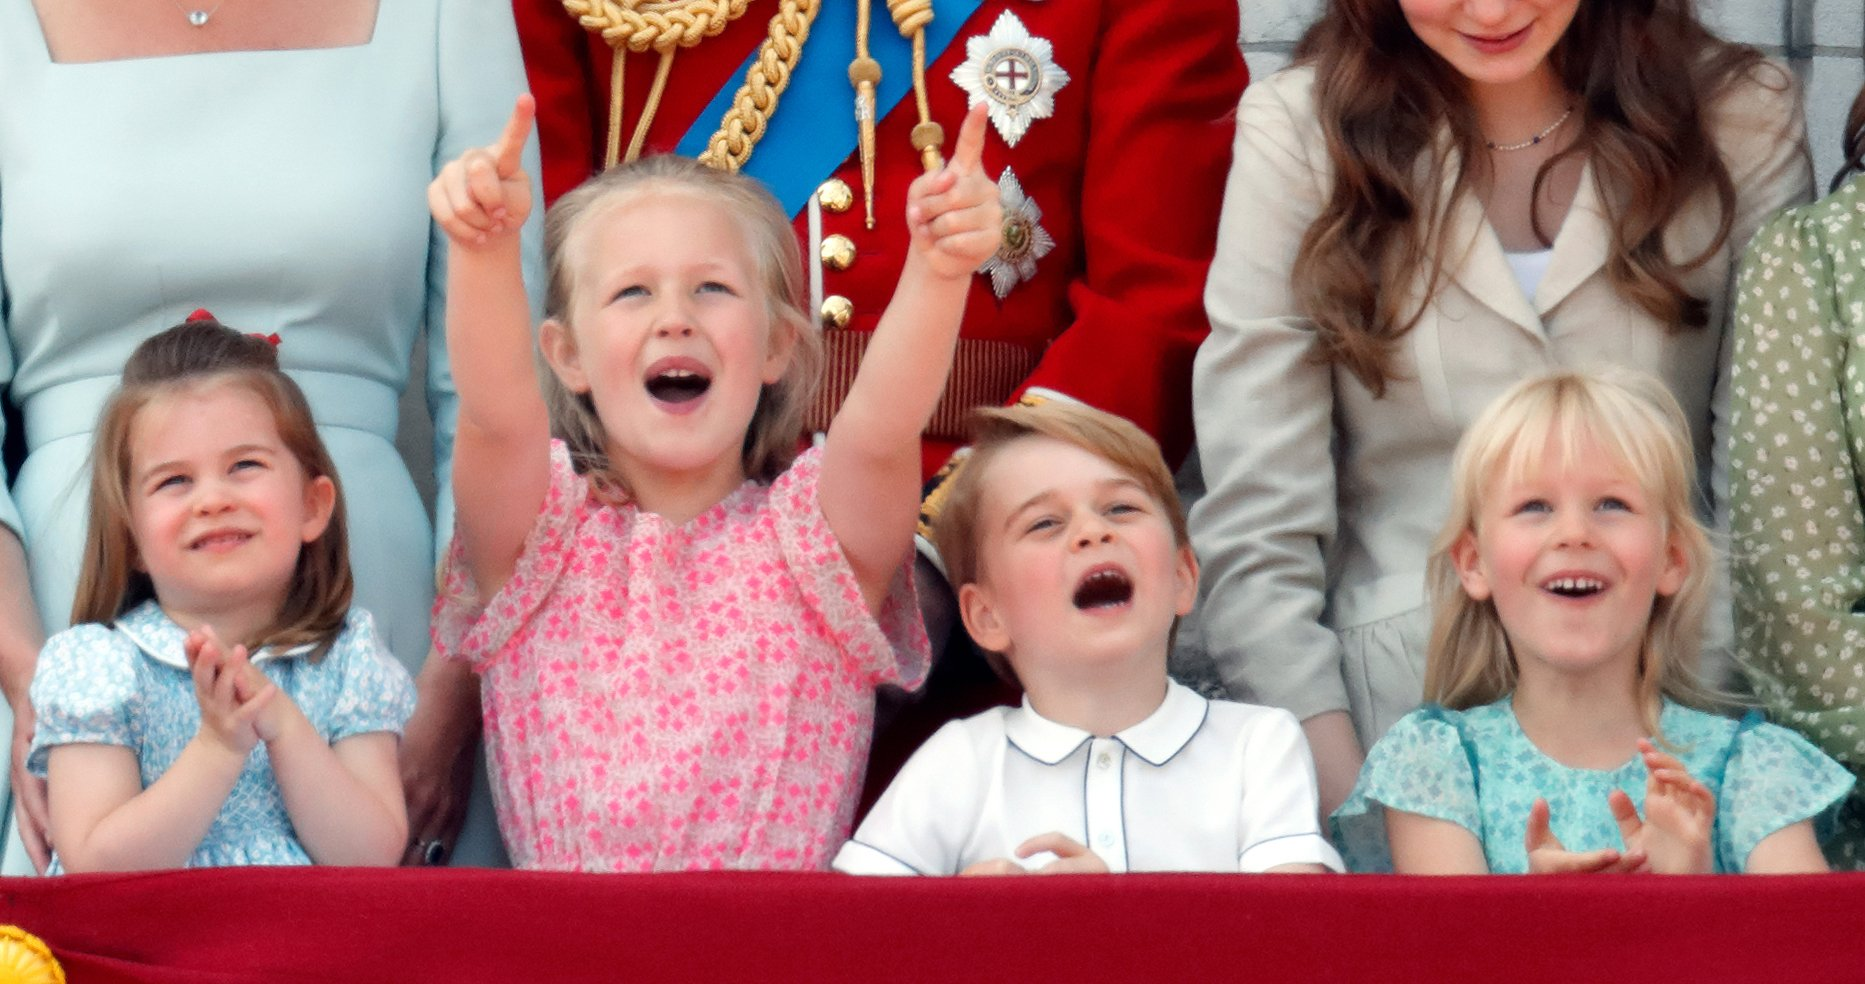 Image Credit: Getty Images / Princess Charlotte, Savannah Phillips, Prince George and Isla Phillips during Trooping The Colour 2018 on June 9, 2018 in London, England.